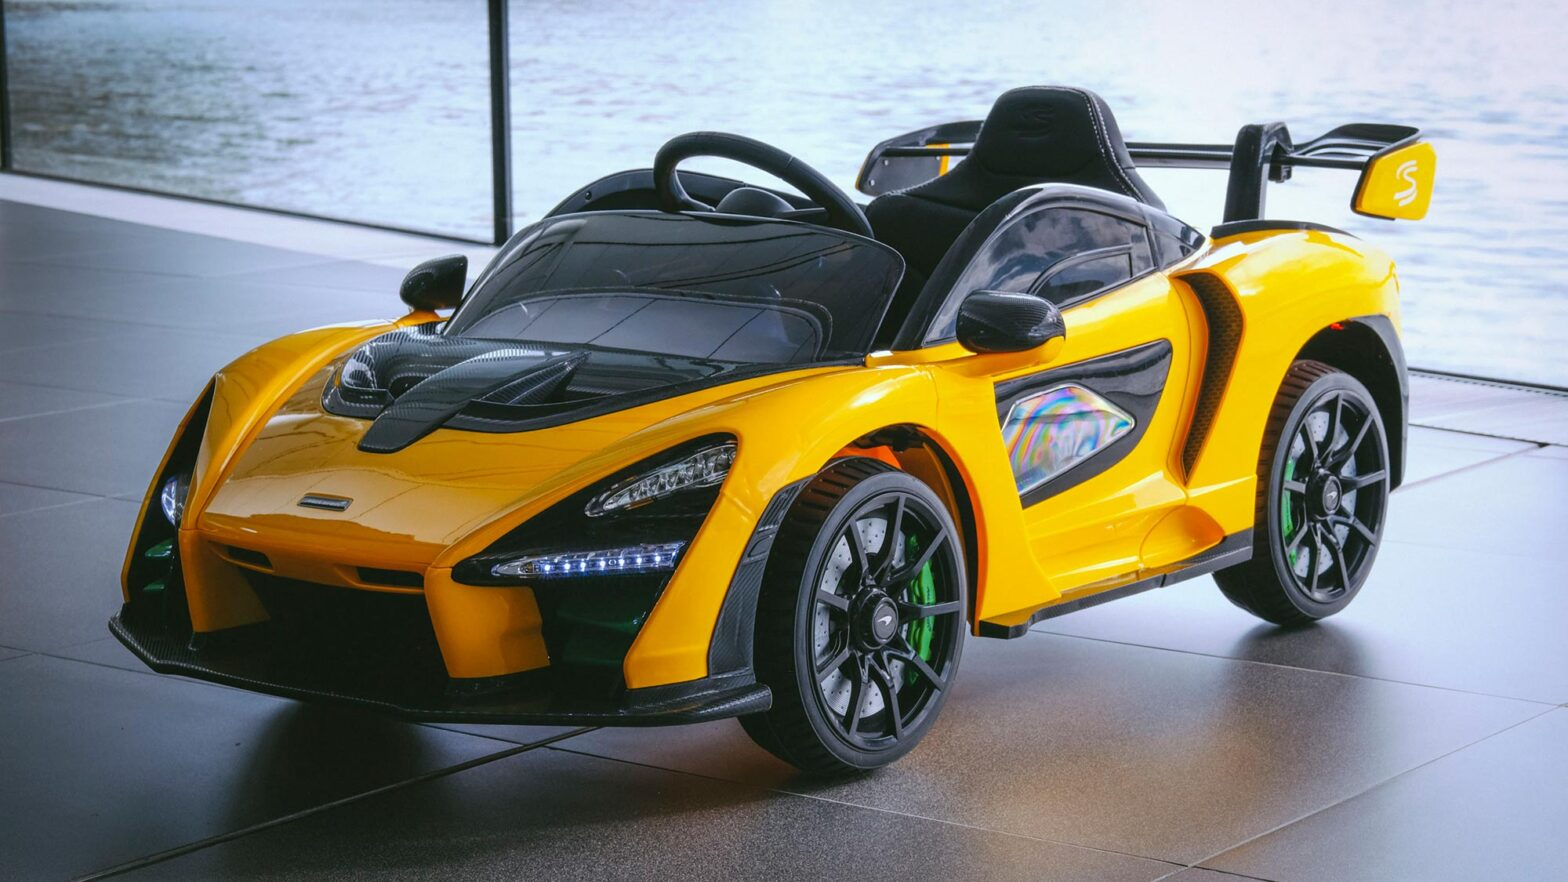 McLaren Senna Ride-On Toy for Kids